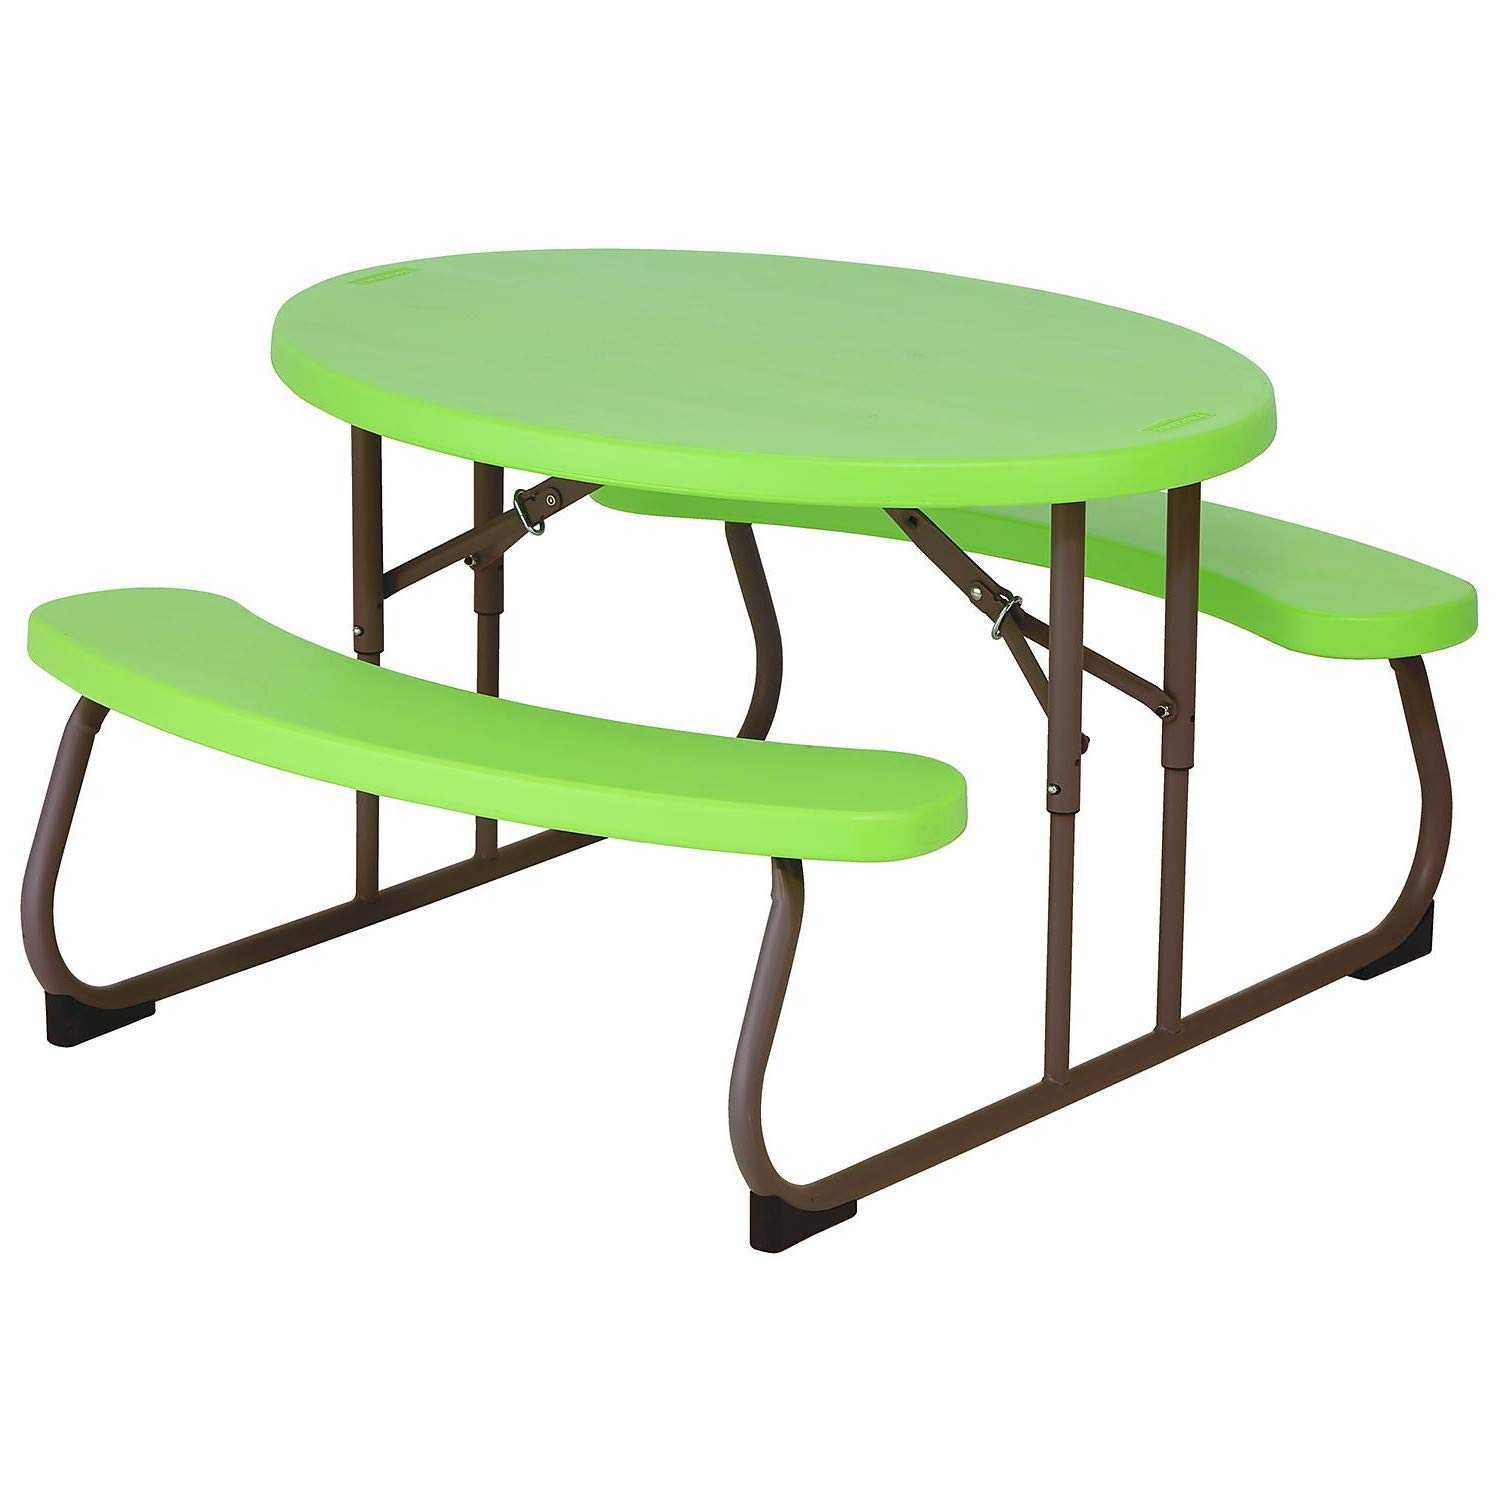 STS SUPPLIES Toddler Picnic Table Oval for Kids Outdoor Metal Plastic Child Commercial Compact Outside Dinner Dining Lounger Furniture & E Book by Easy2Find. by STS SUPPLIES